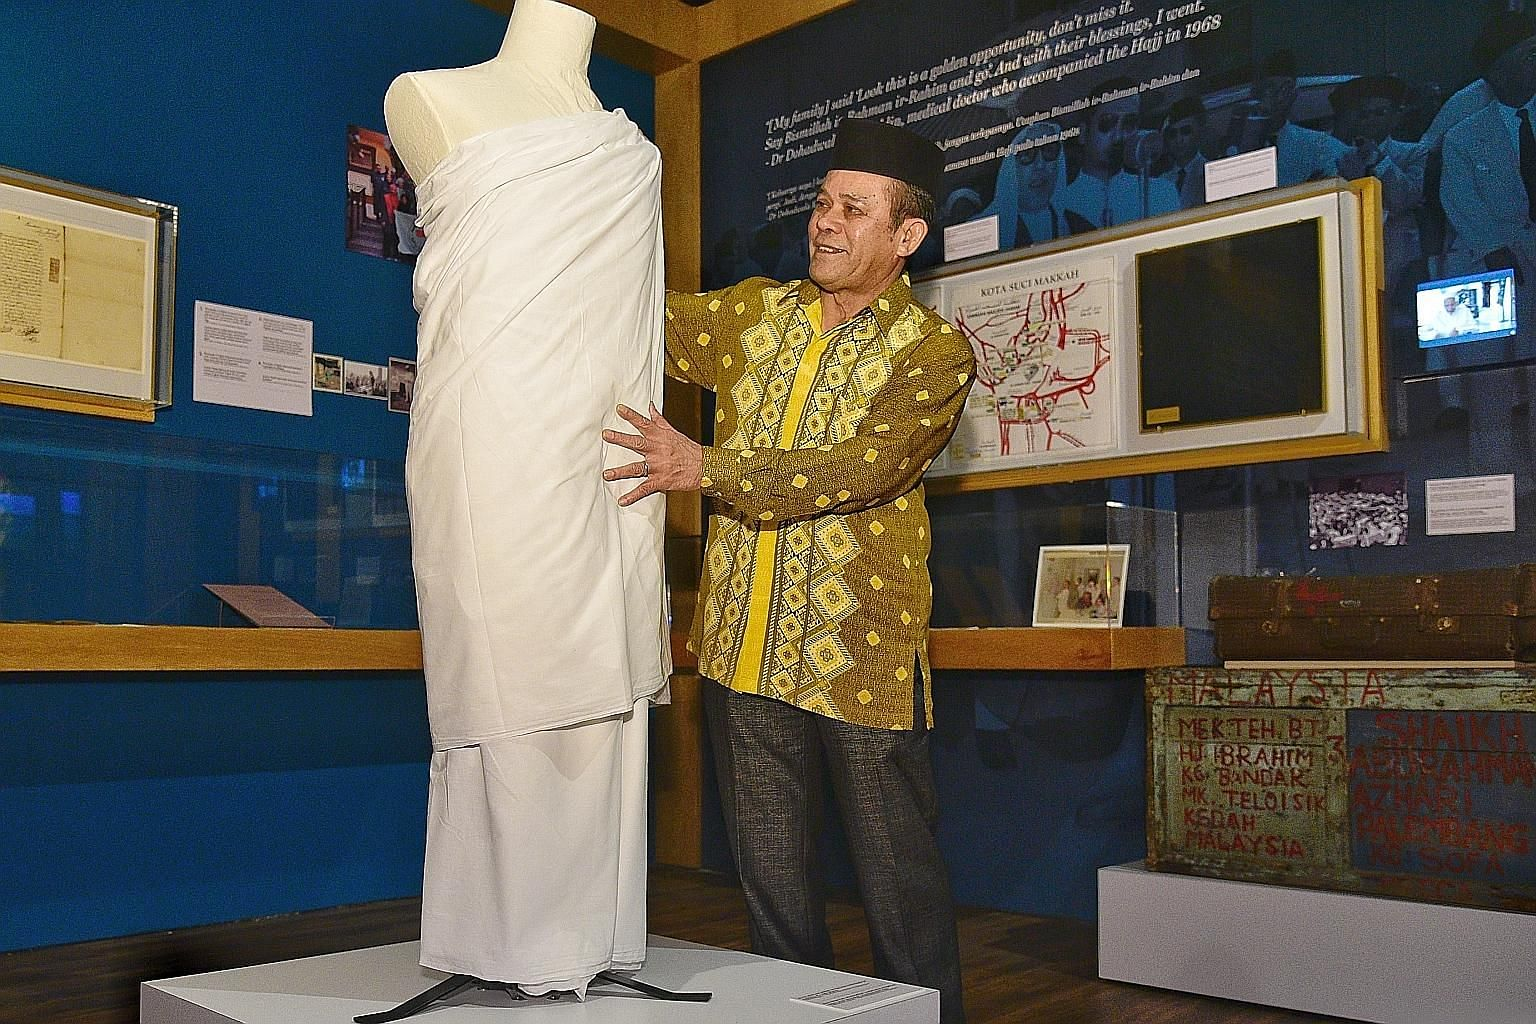 Mr Abdul Halim Mohamed Amin, the former head of haj services with Muis, with the display of his ihram and pelikat sarong, worn by male pilgrims to Mecca, which he donated for the exhibition at the Malay Heritage Centre in Kampong Glam.